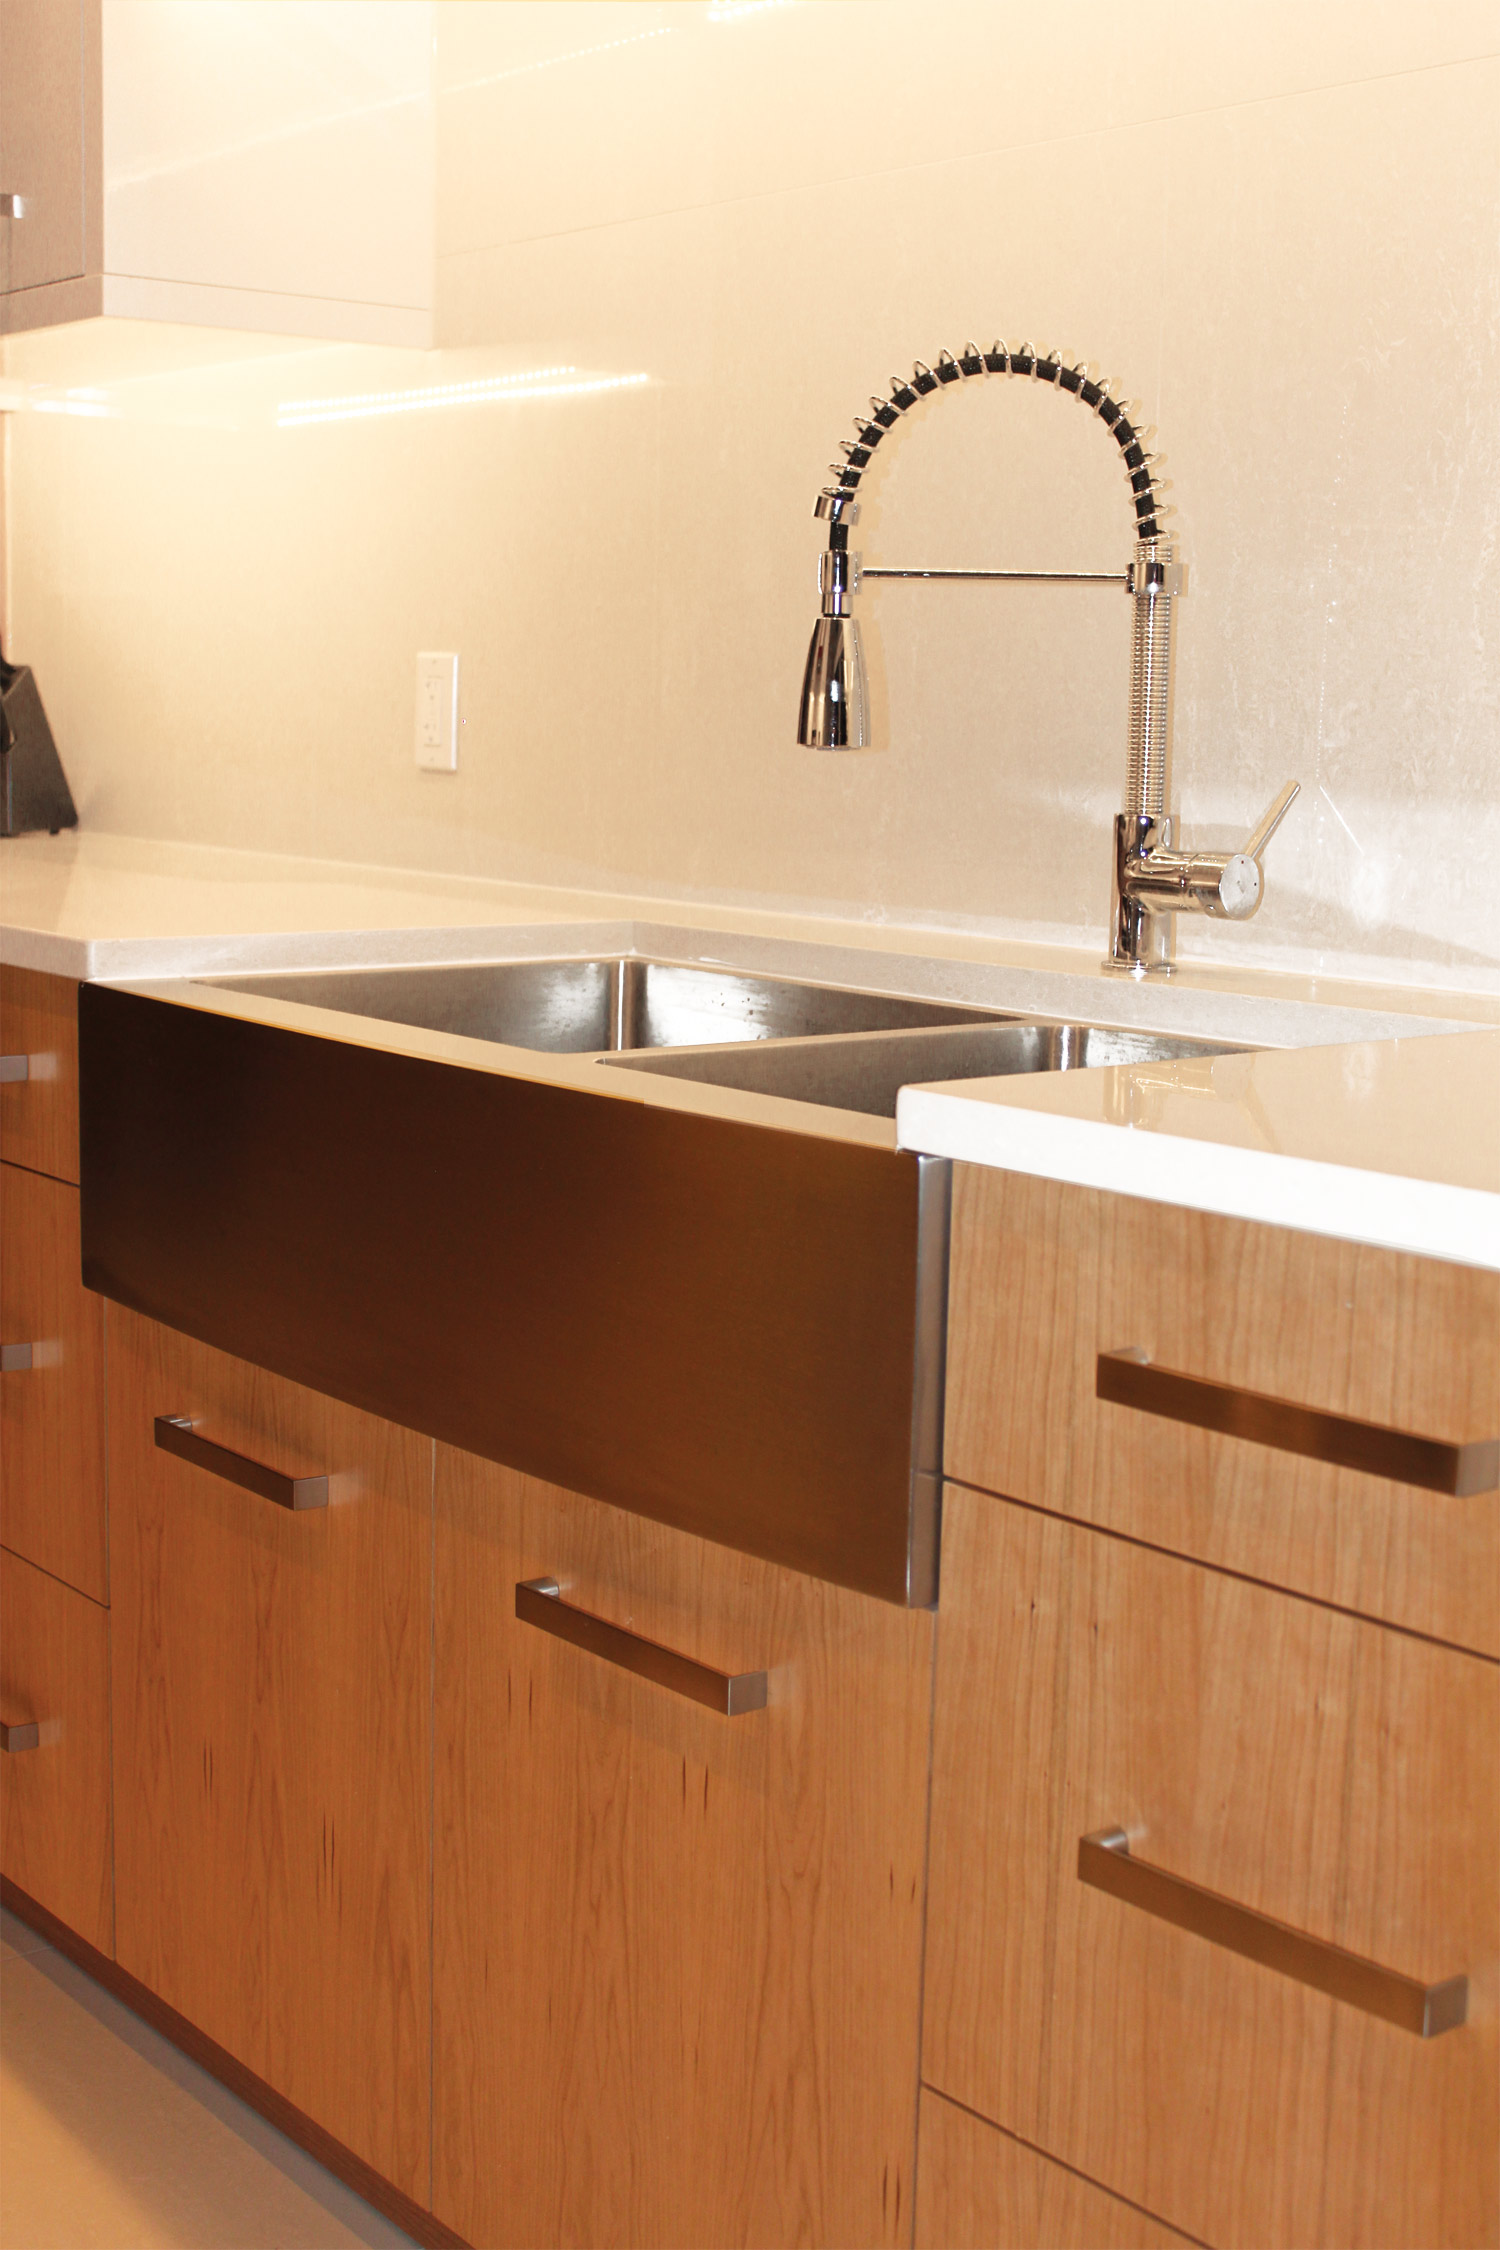 SLEEK APRON FRONT SINK